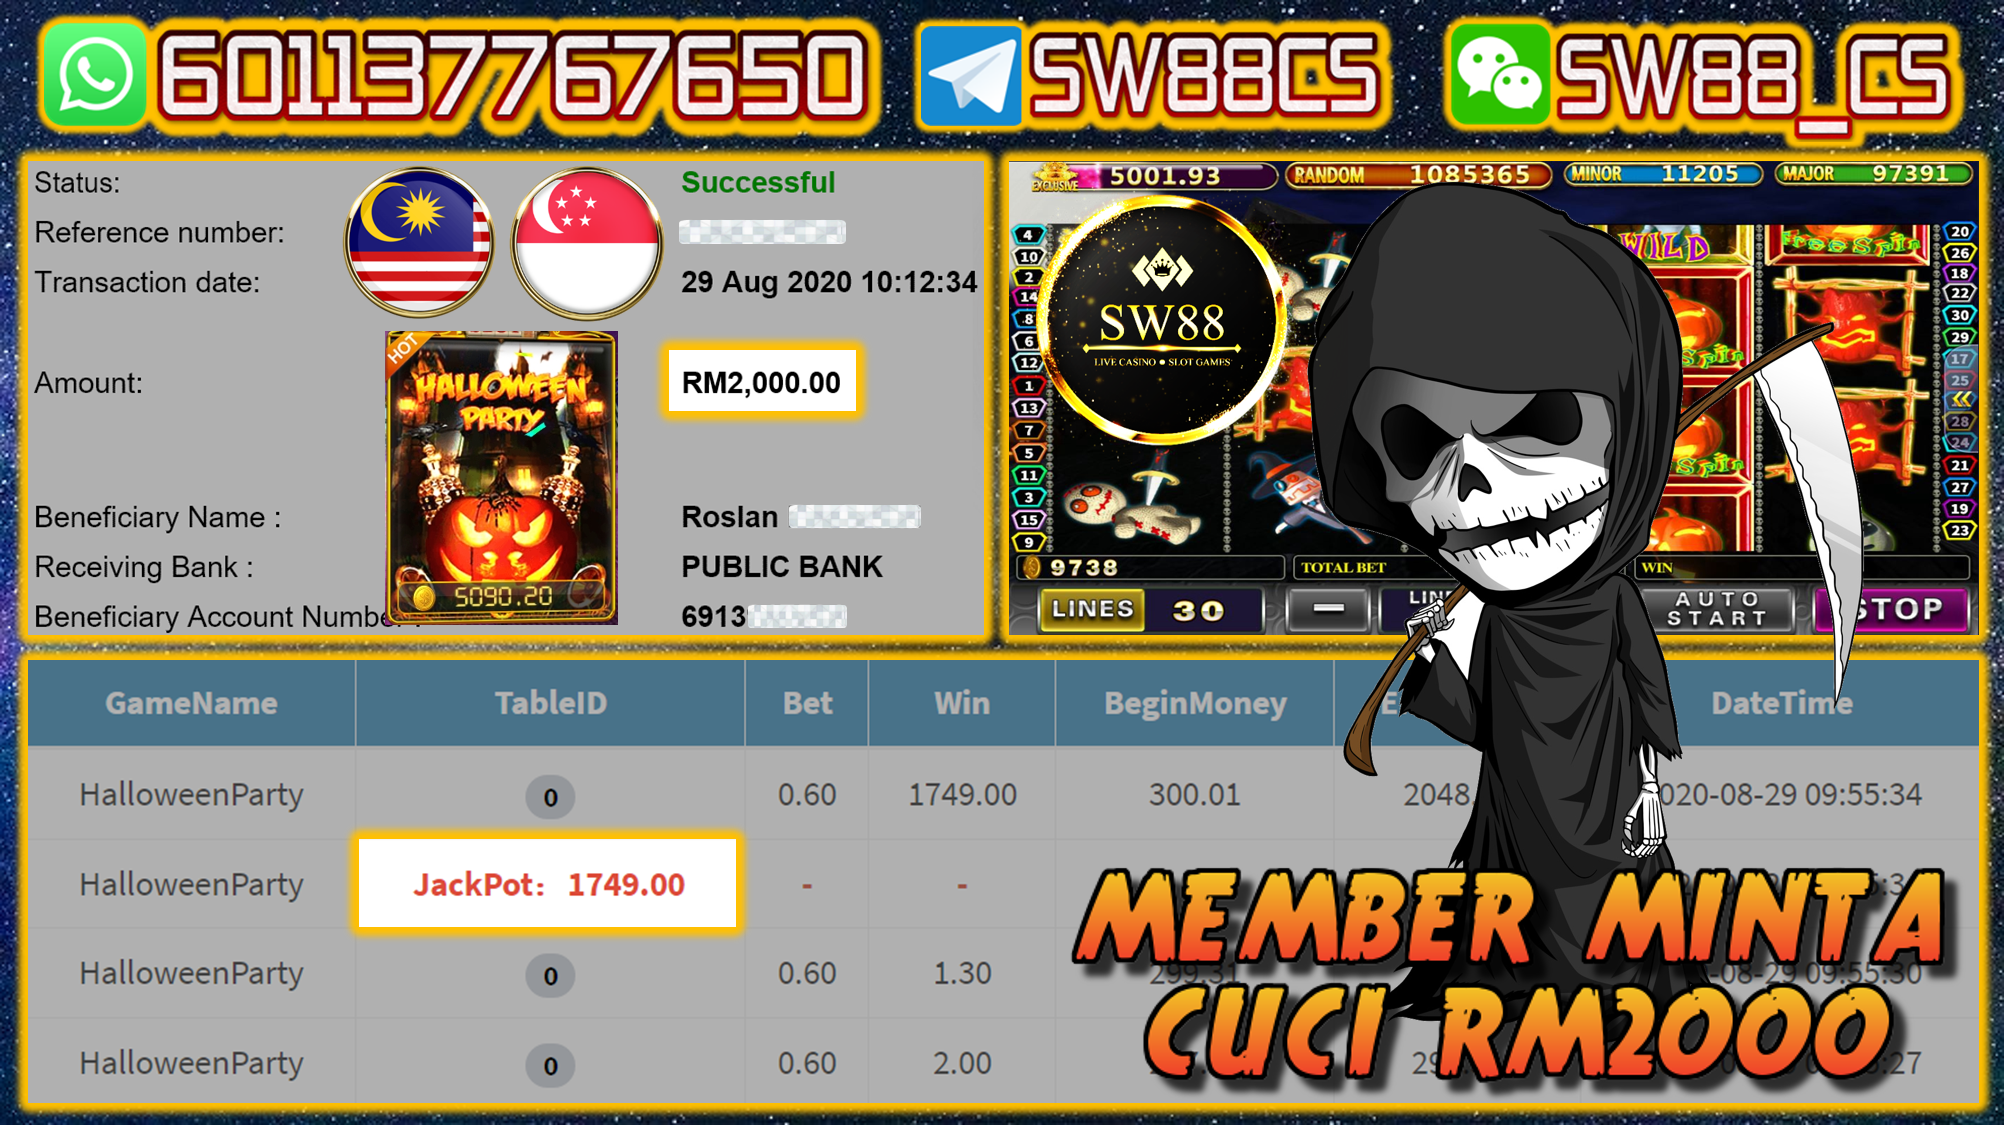 Pussy888 Halloween Party Withdraw Rm2000 Blackjack Slots Games Online Casino